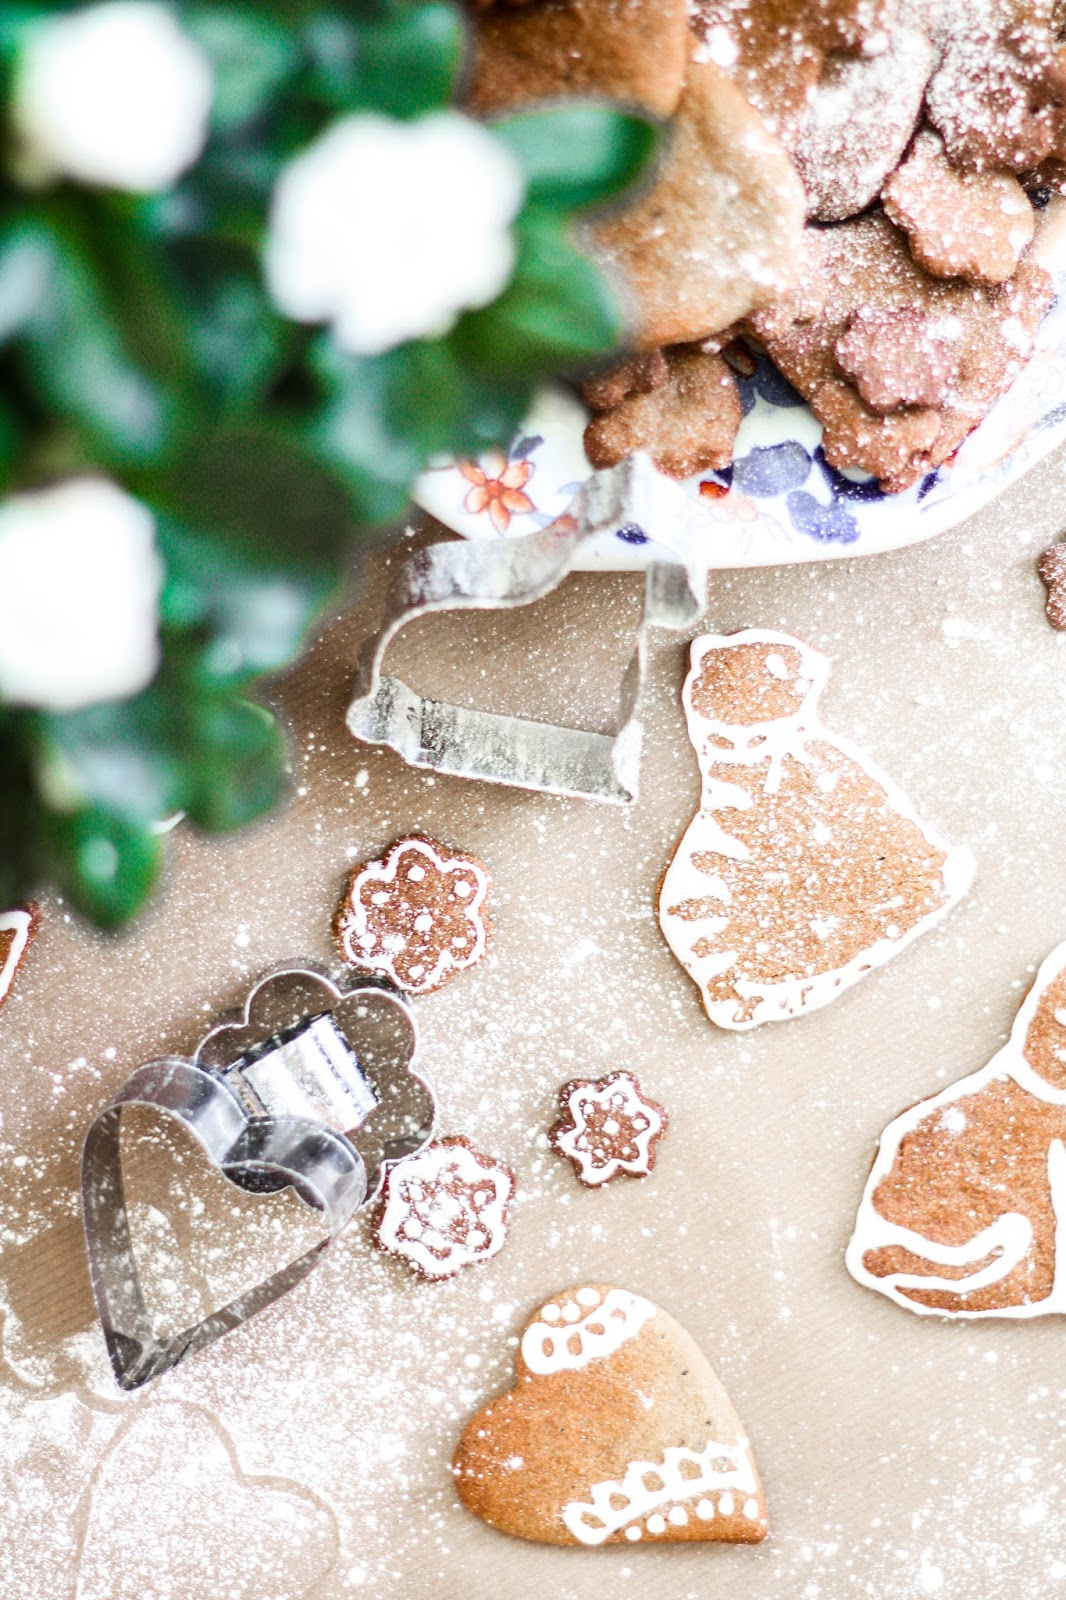 ... blog based in Birmingham: Gingerbread cookies with royal icing